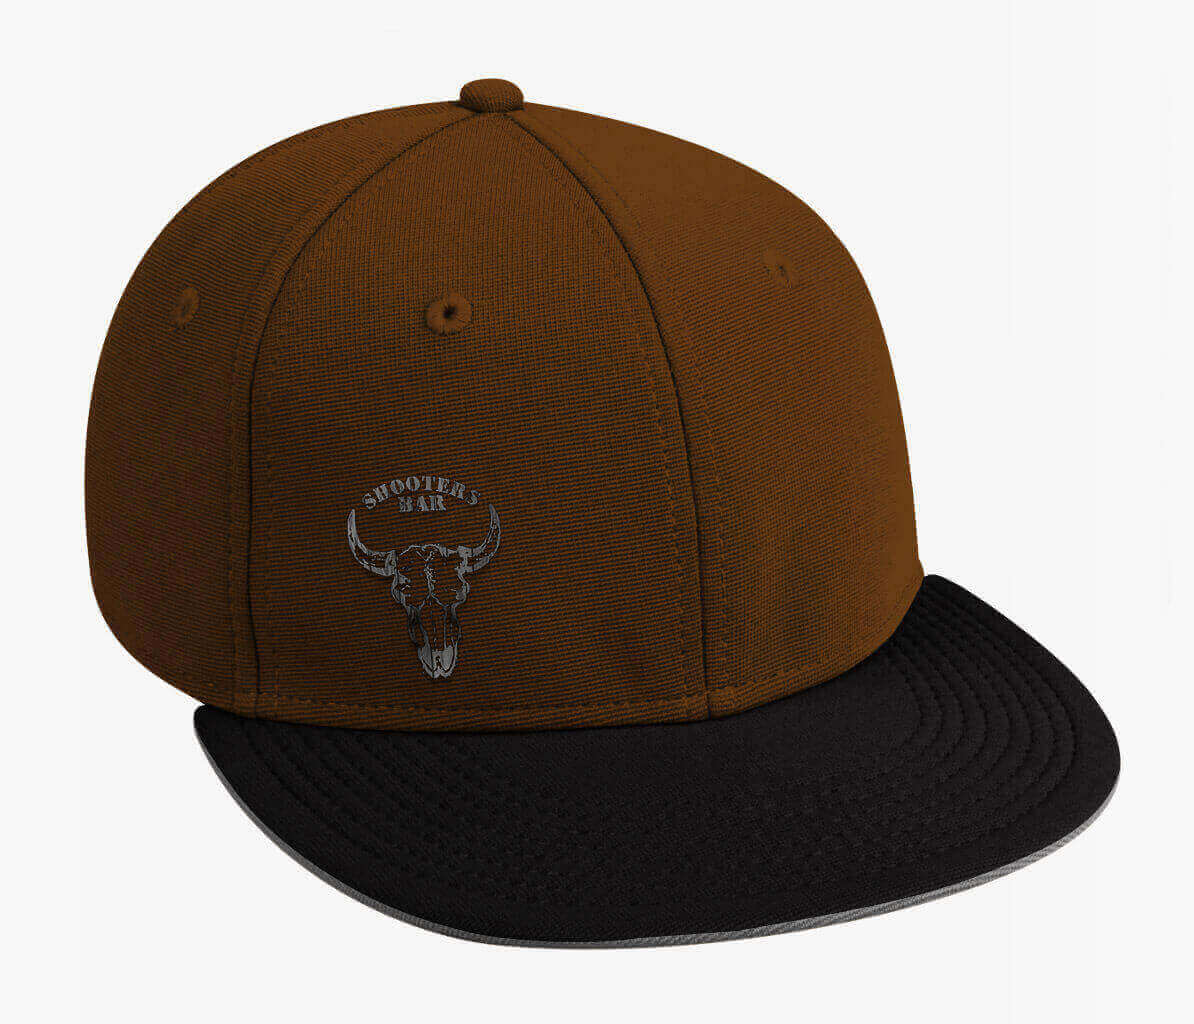 Shooters bar Merchandise Snapback Cap